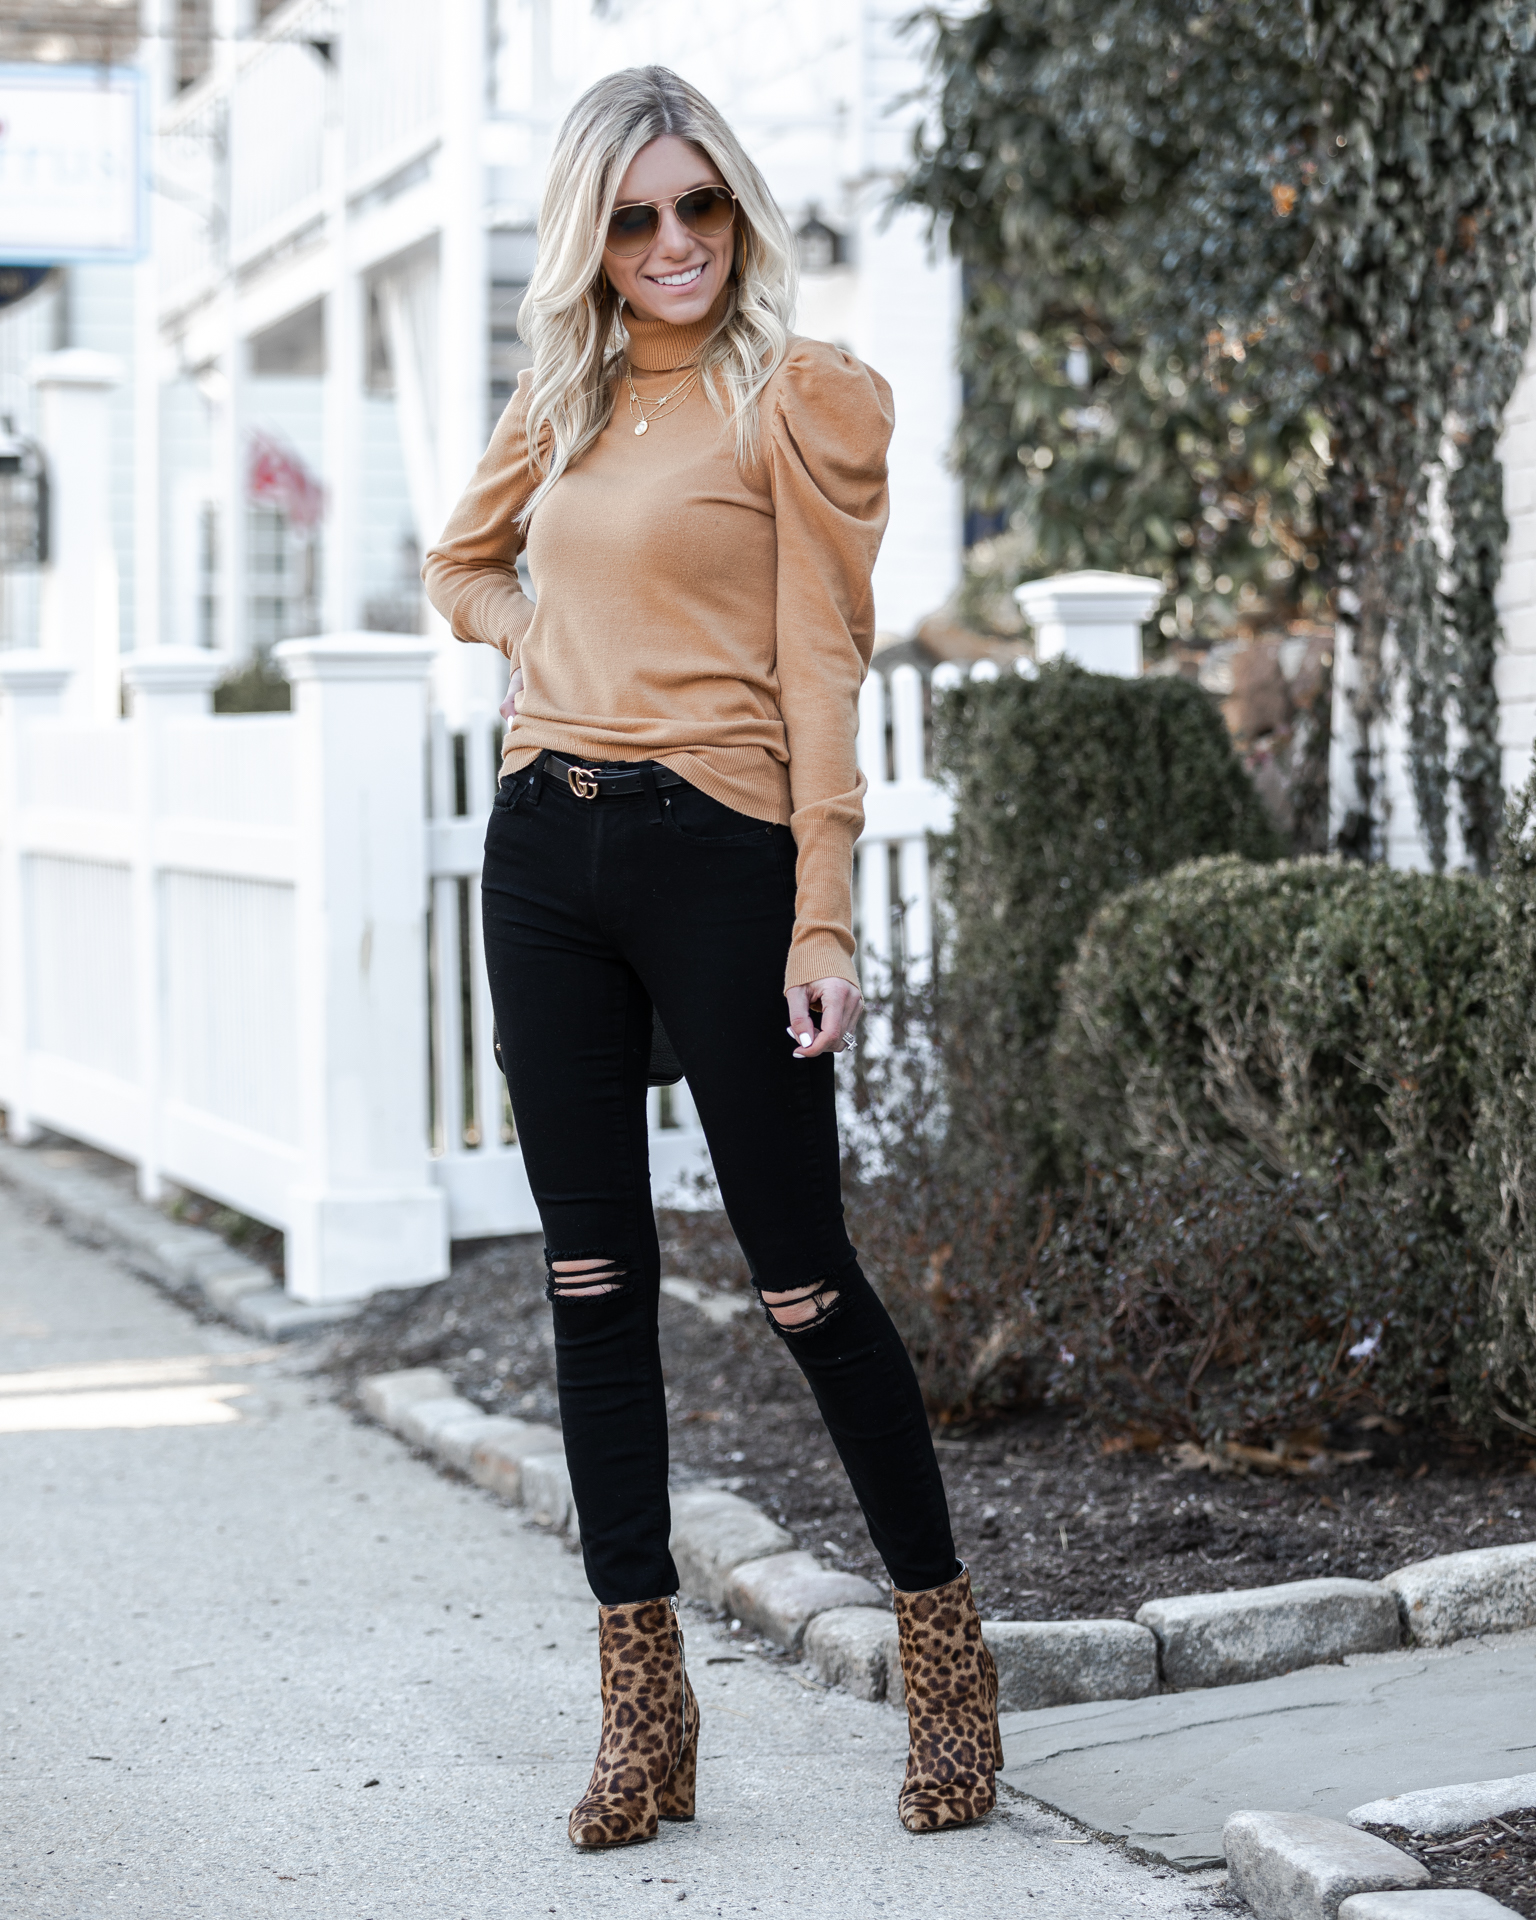 light-sweater-from-vici-collection-the-glamorous-gal